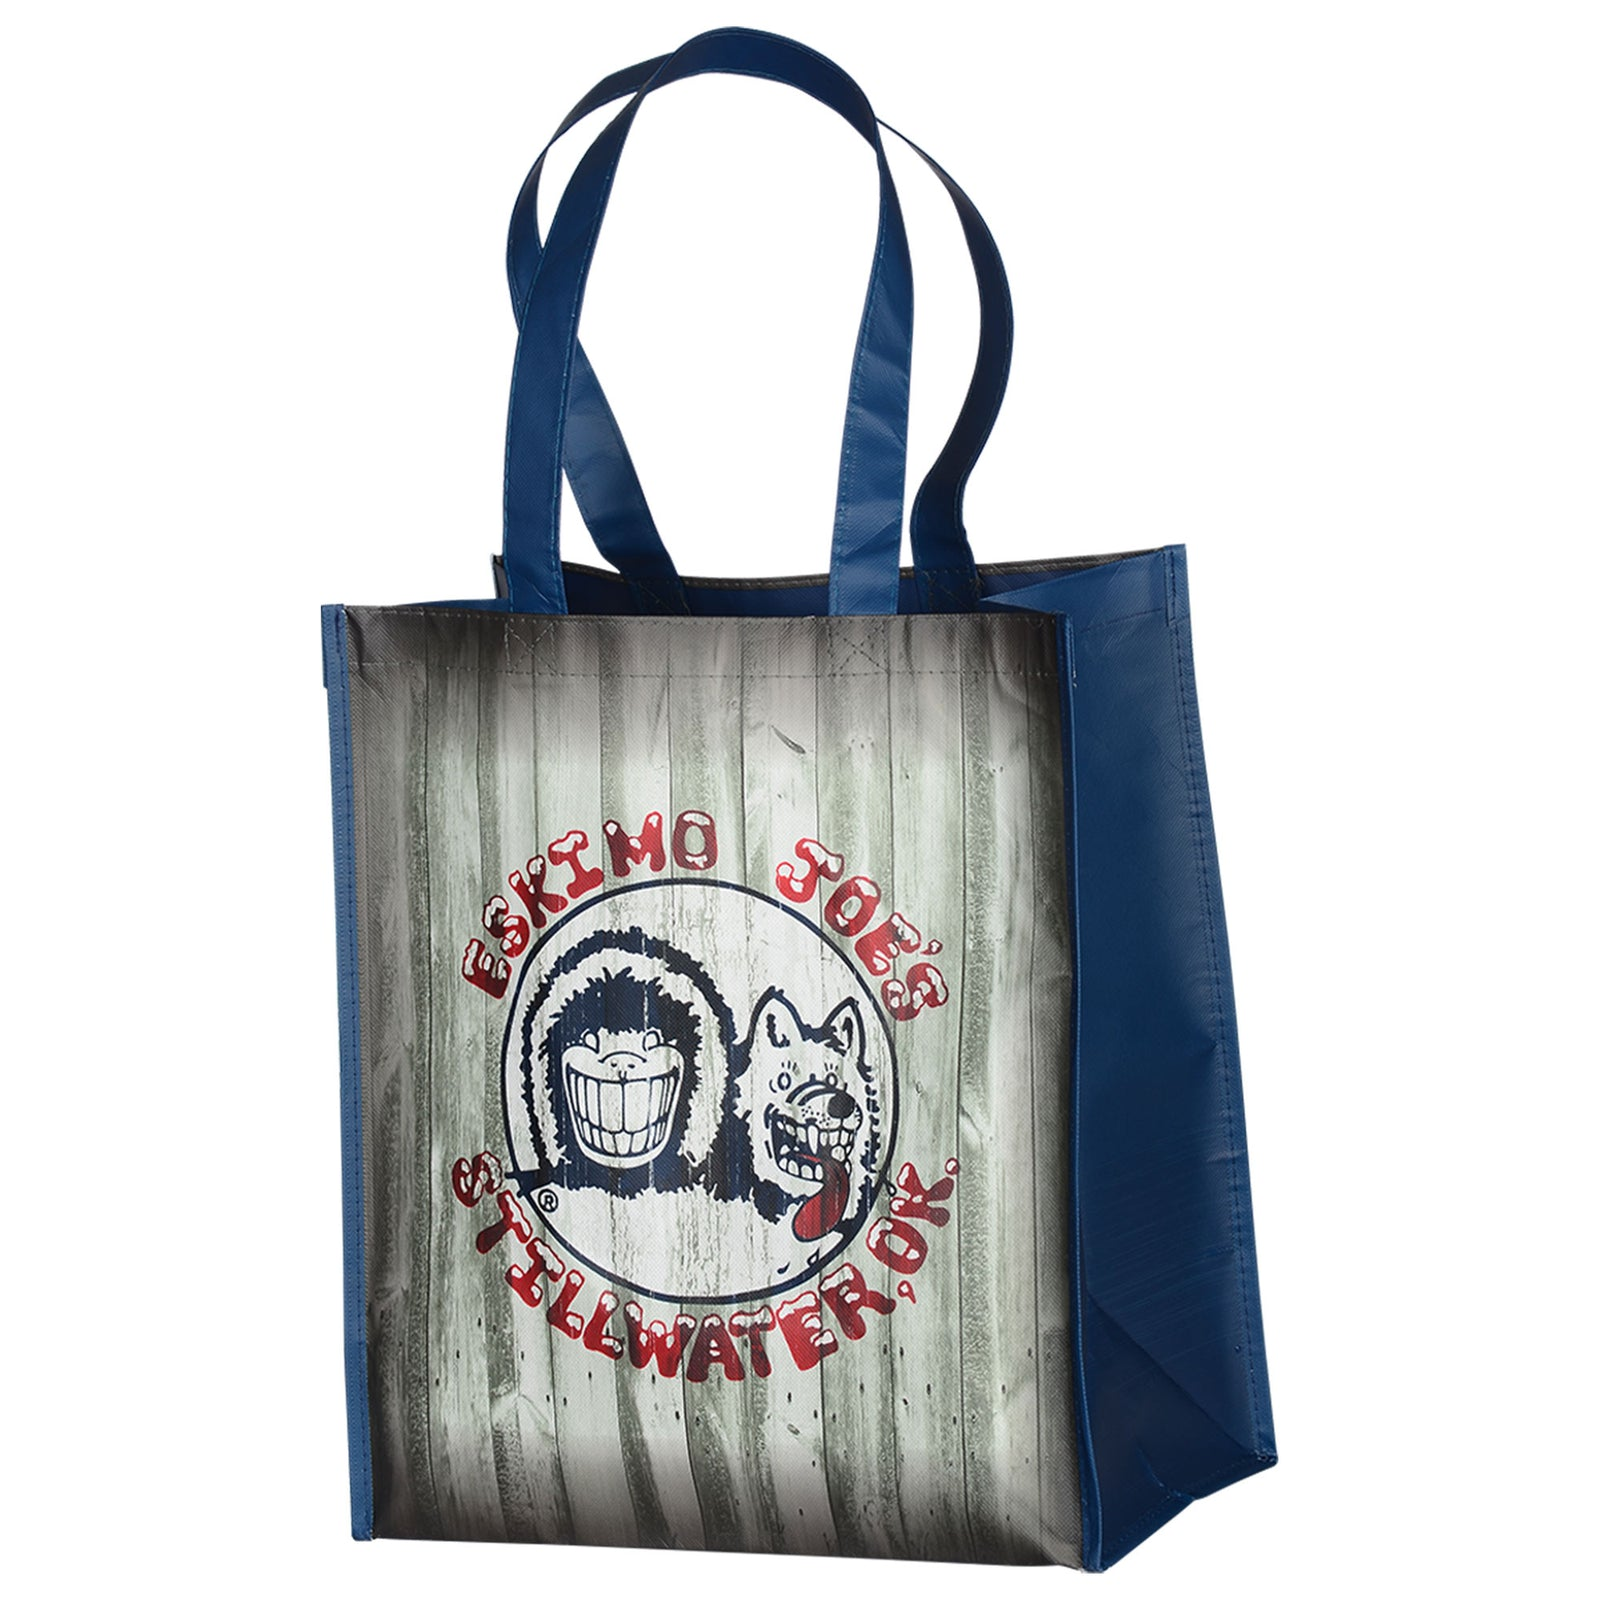 JOE'S REUSABLE SHOPPING BAG - JRSB